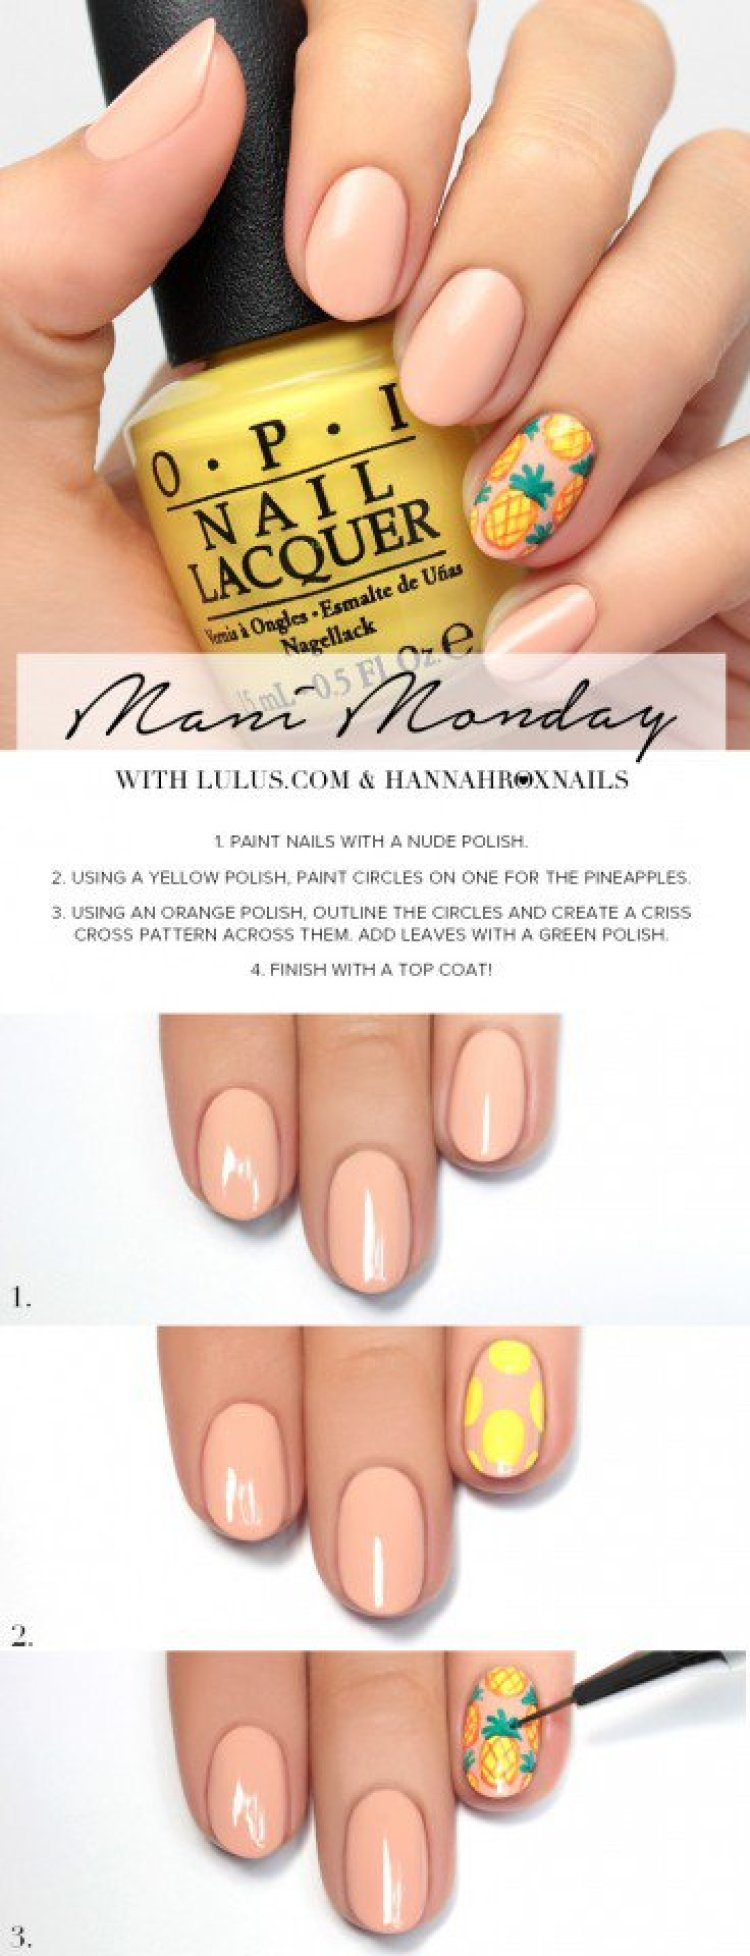 10 simple nail art designs tutorial you need to know for summer simple nail art designs tutorial pineapple nail design tutorial prinsesfo Image collections